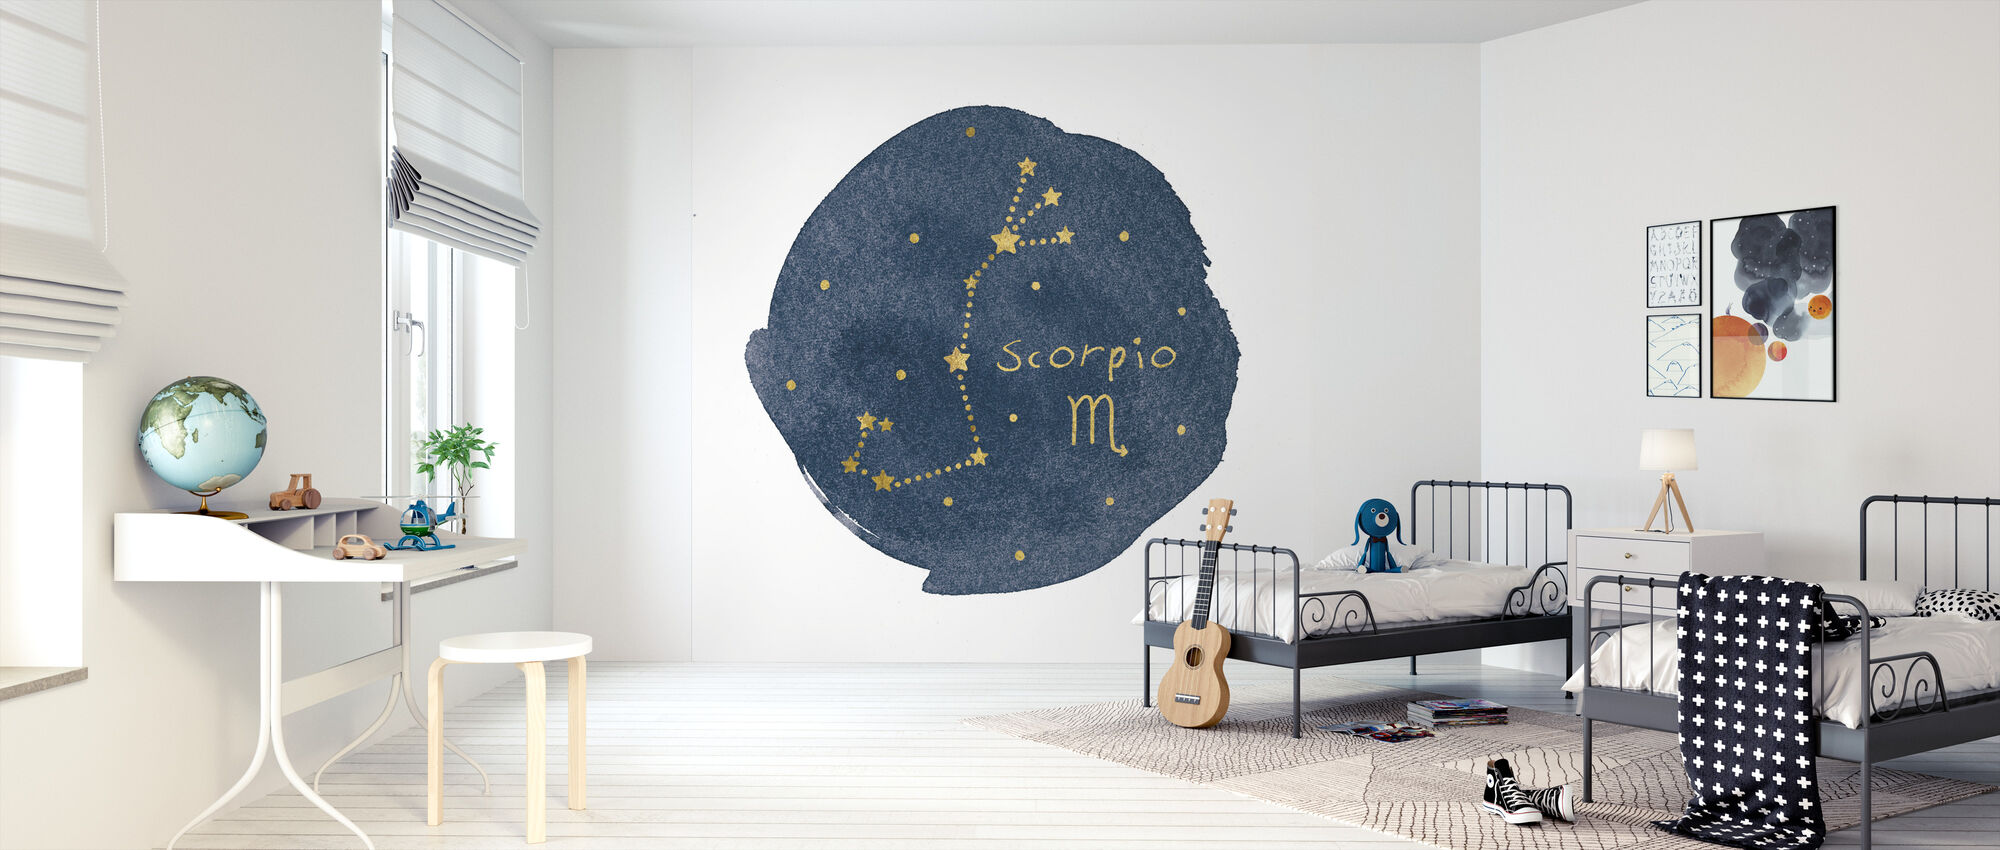 Horoscope Scorpio - Wallpaper - Kids Room